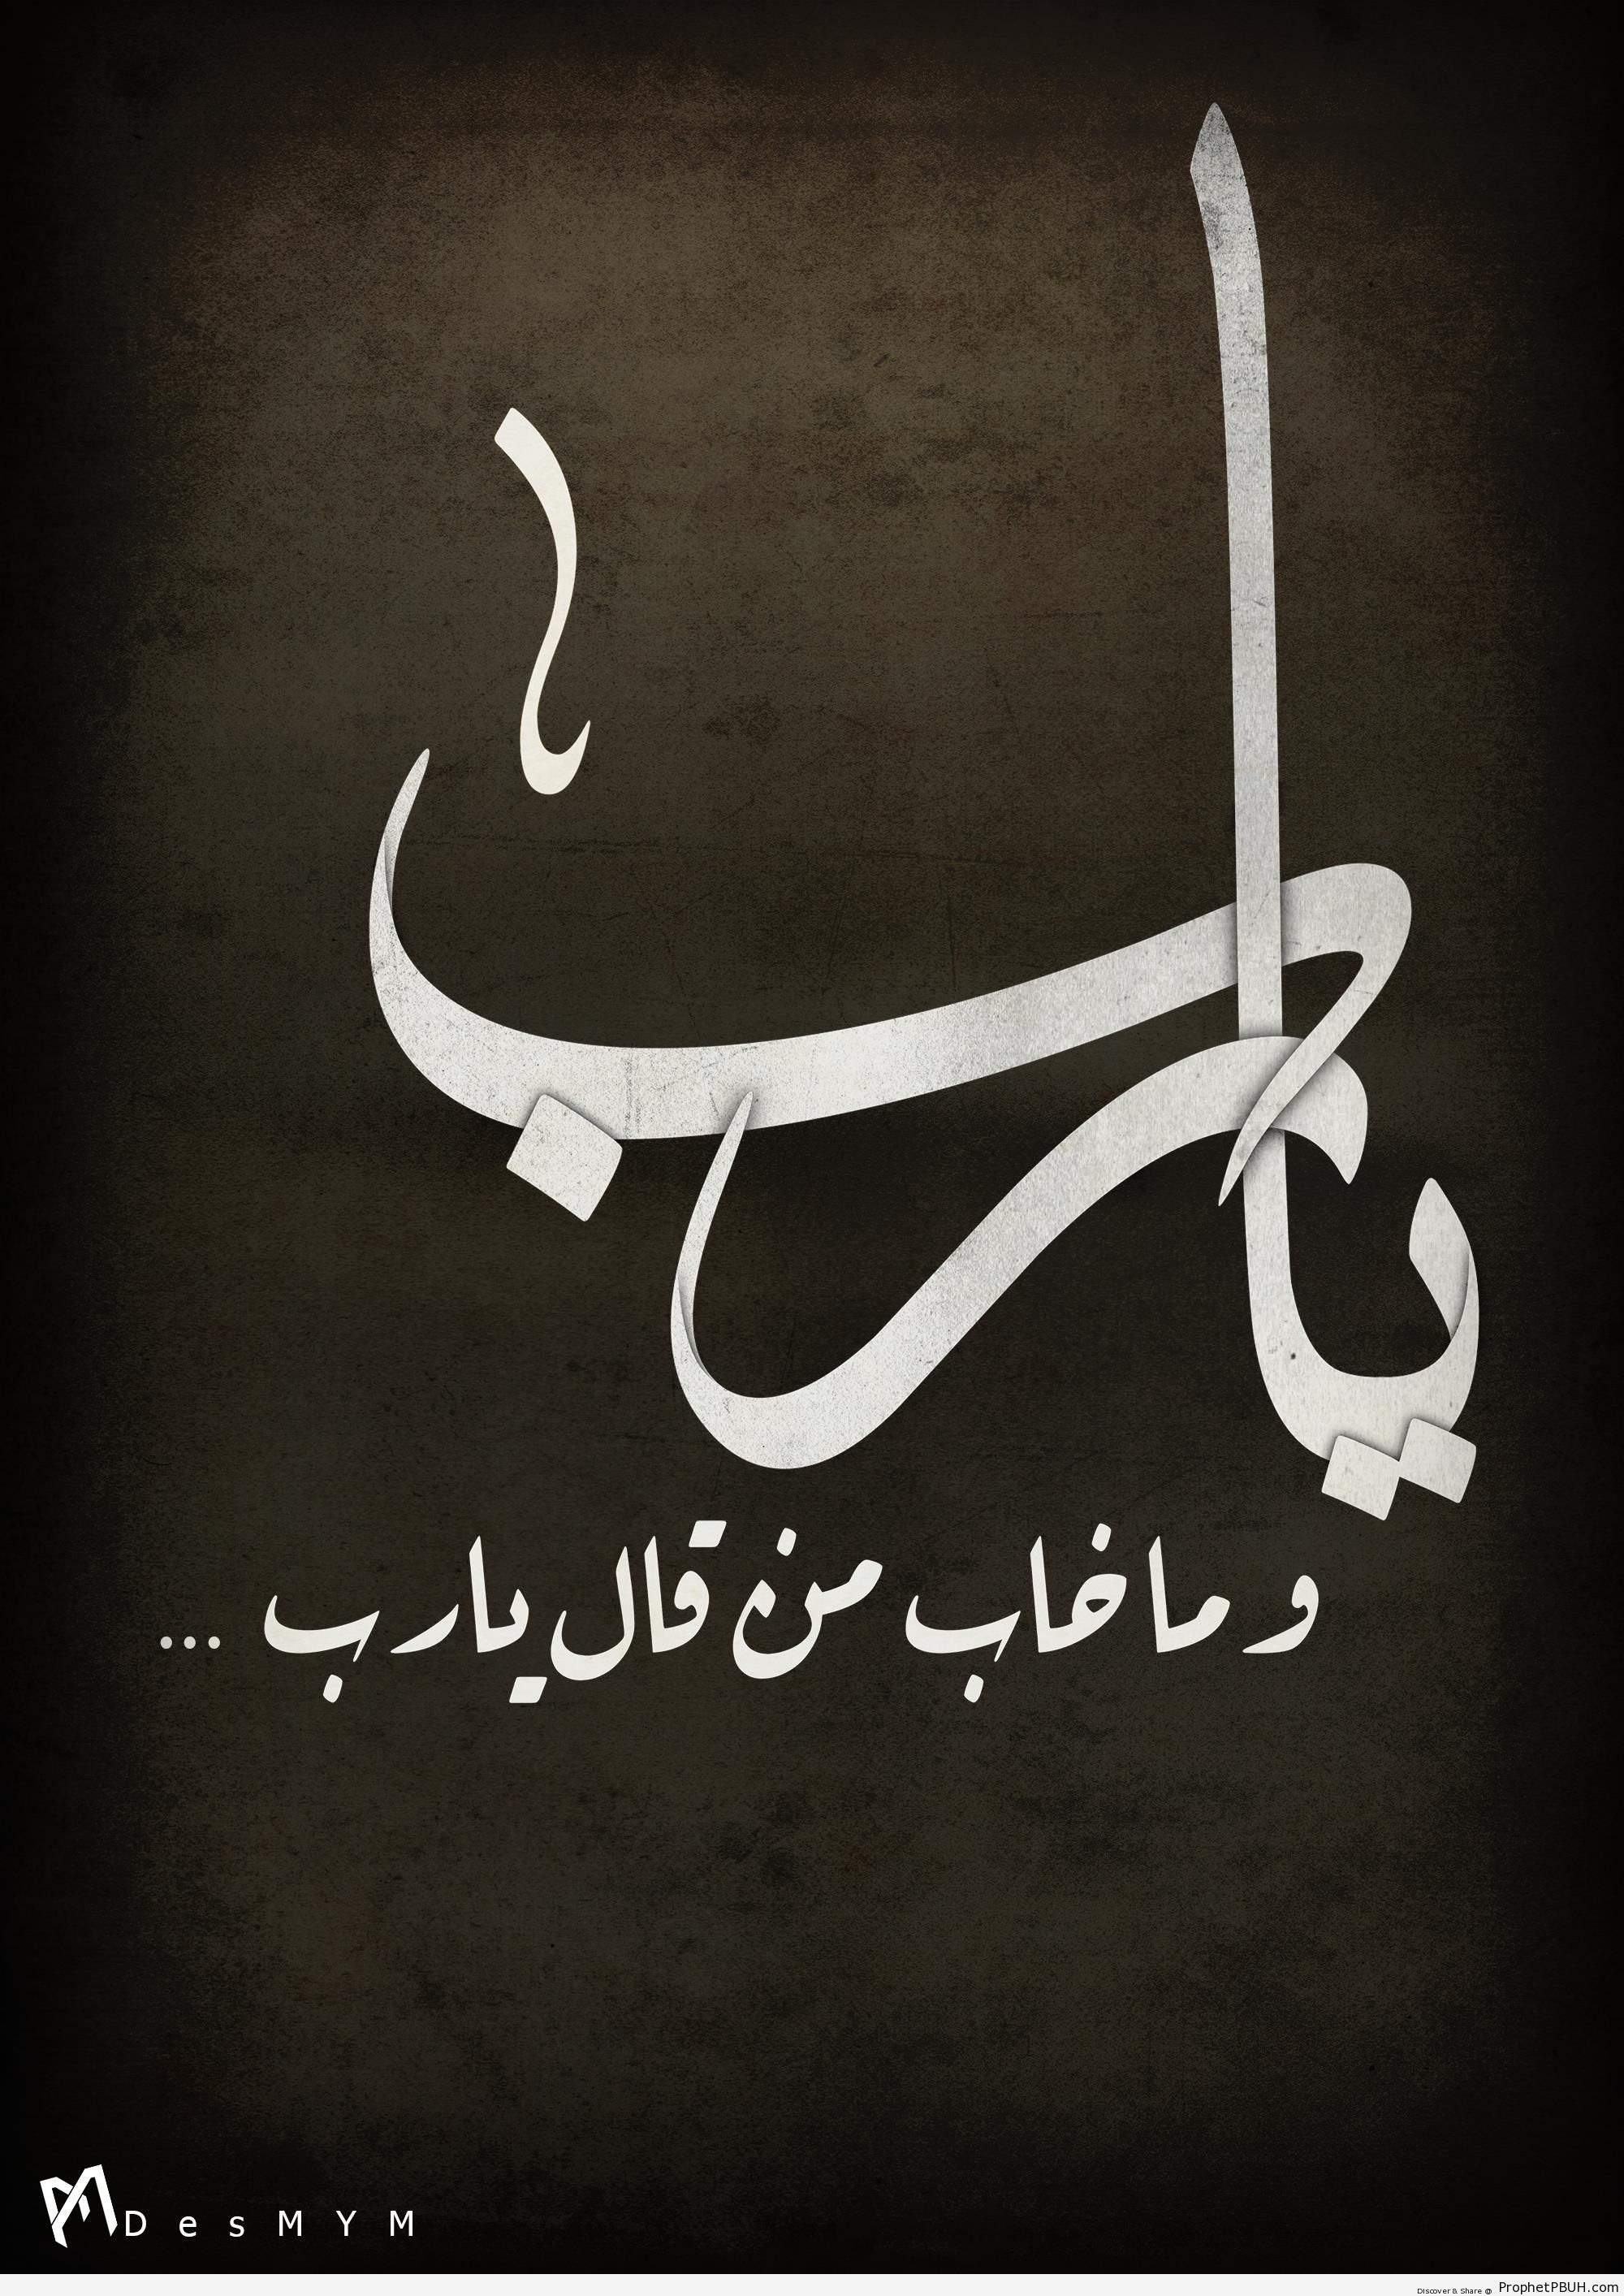 Ya Rabb Calligraphy - Islamic Calligraphy and Typography